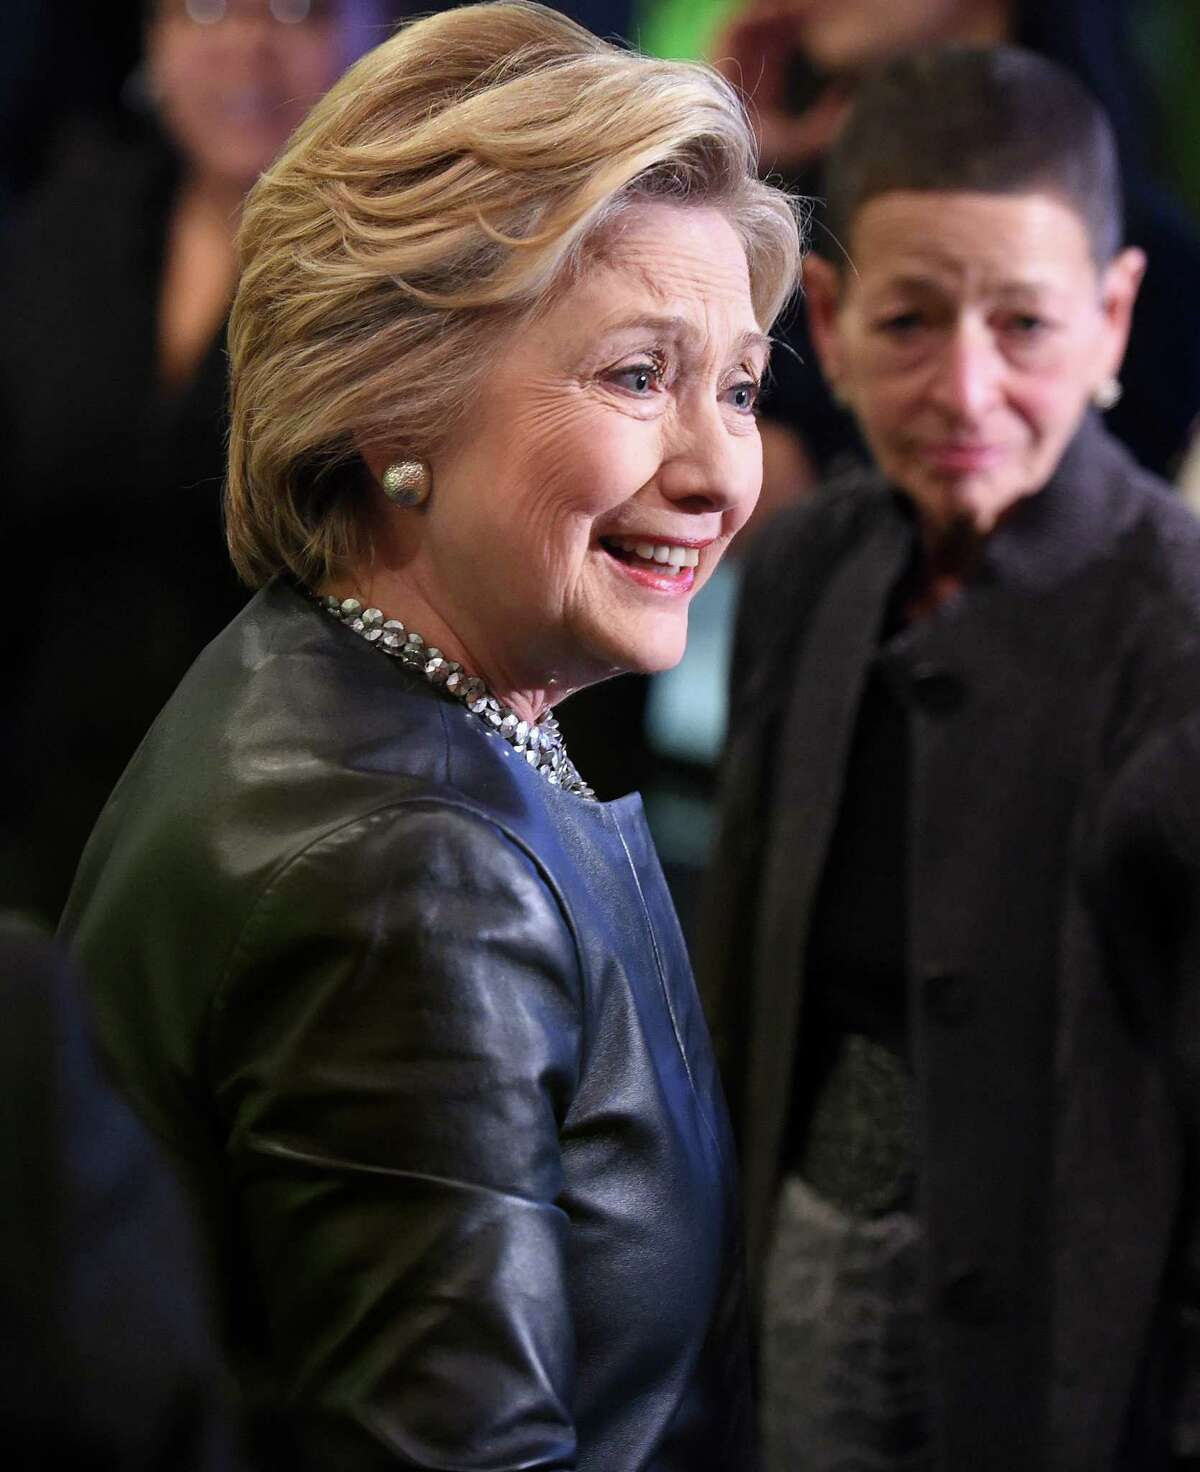 (Arnold Gold-New Haven Register) Democratic presidential candidate Hillary Clinton (center) arrives at a campaign stop at Orangeside on Temple in New Haven, Connecticut, on April 23, 2016.